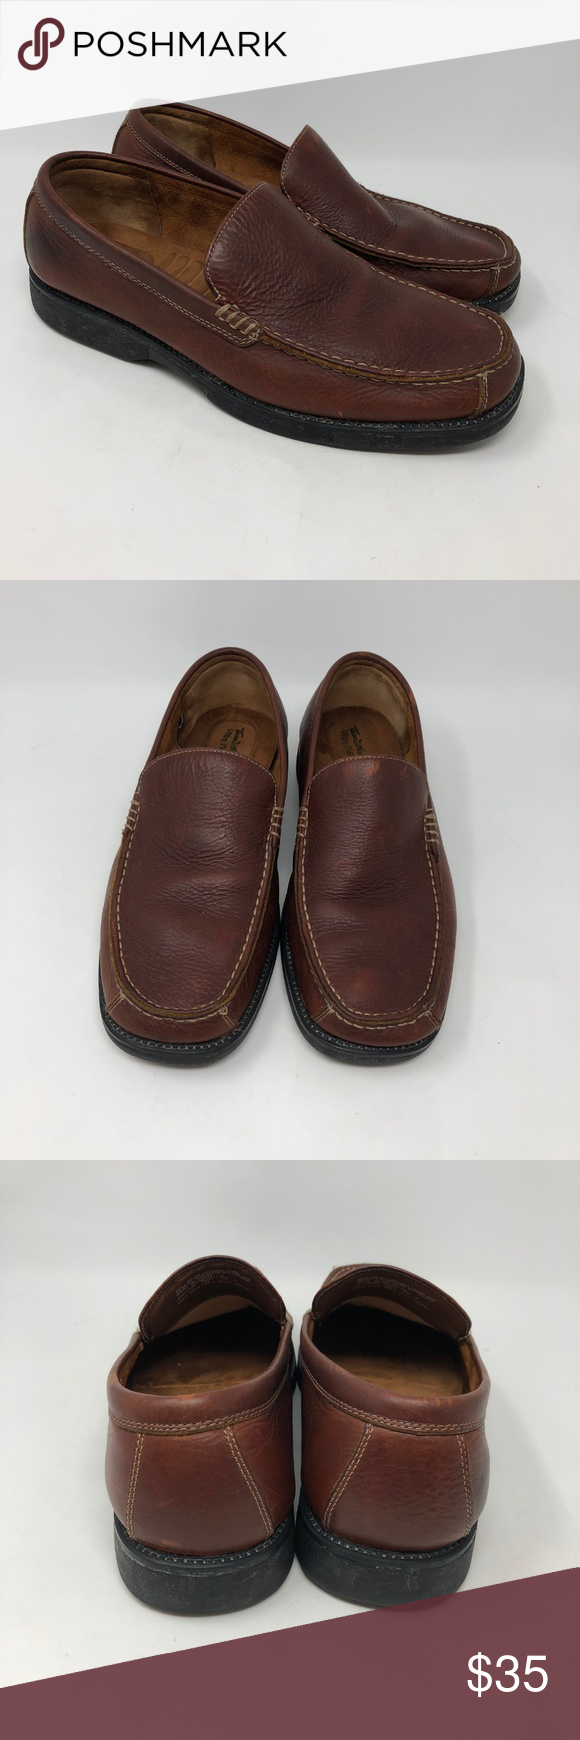 1d0ca5c4f37 Thom McAn Brown Leather Comfort Loafers 13 -Thom McAn brown leather ...